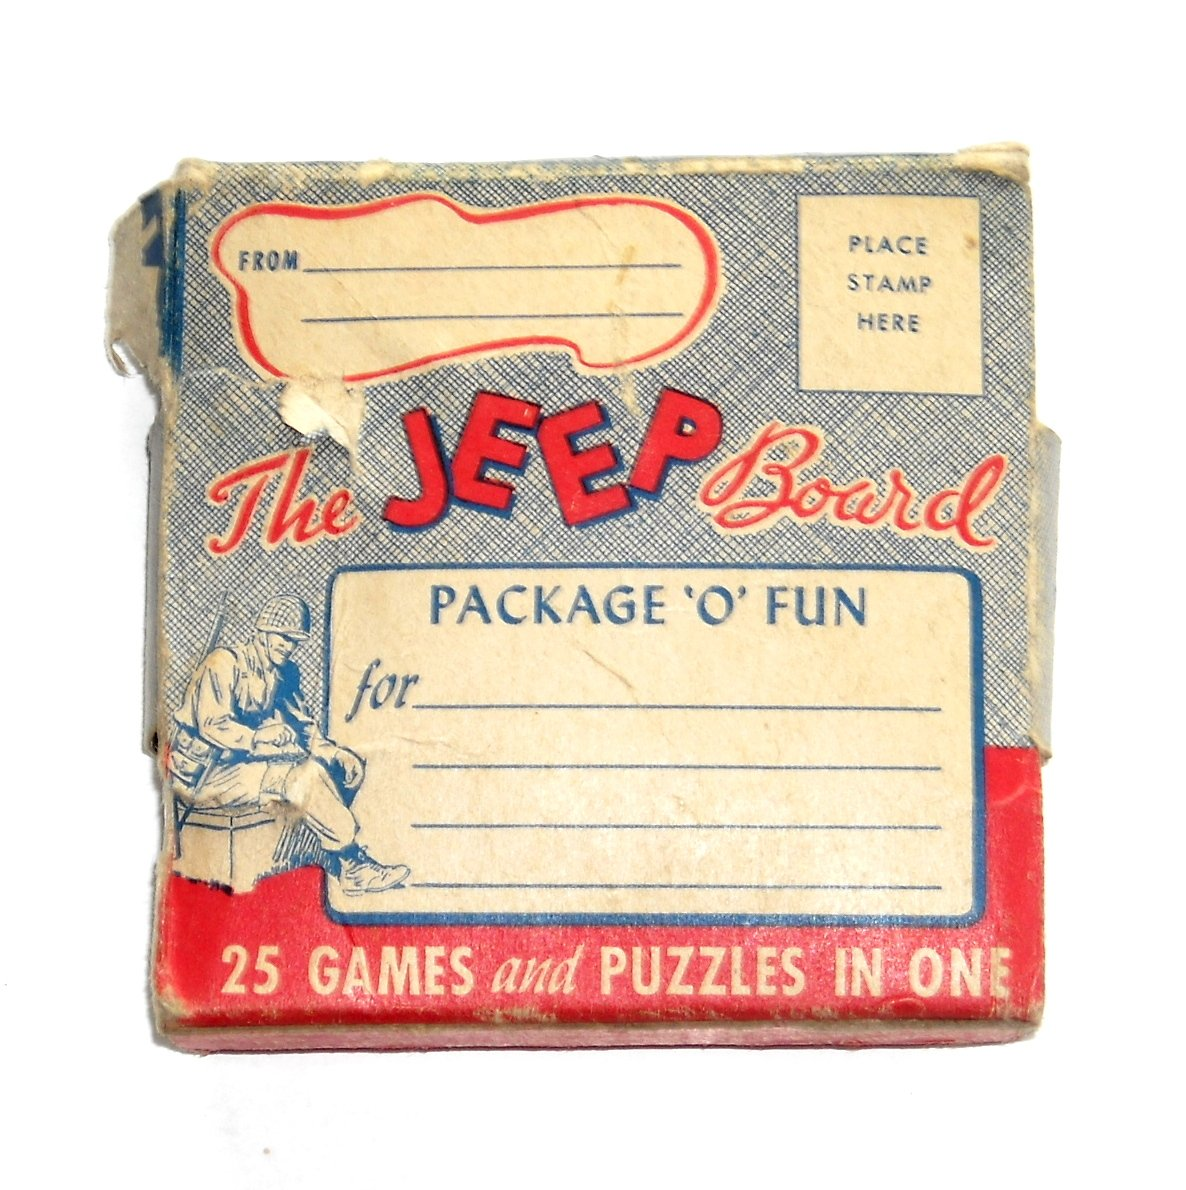 The JEEP Board Vintage 25 Games & Puzzles In One